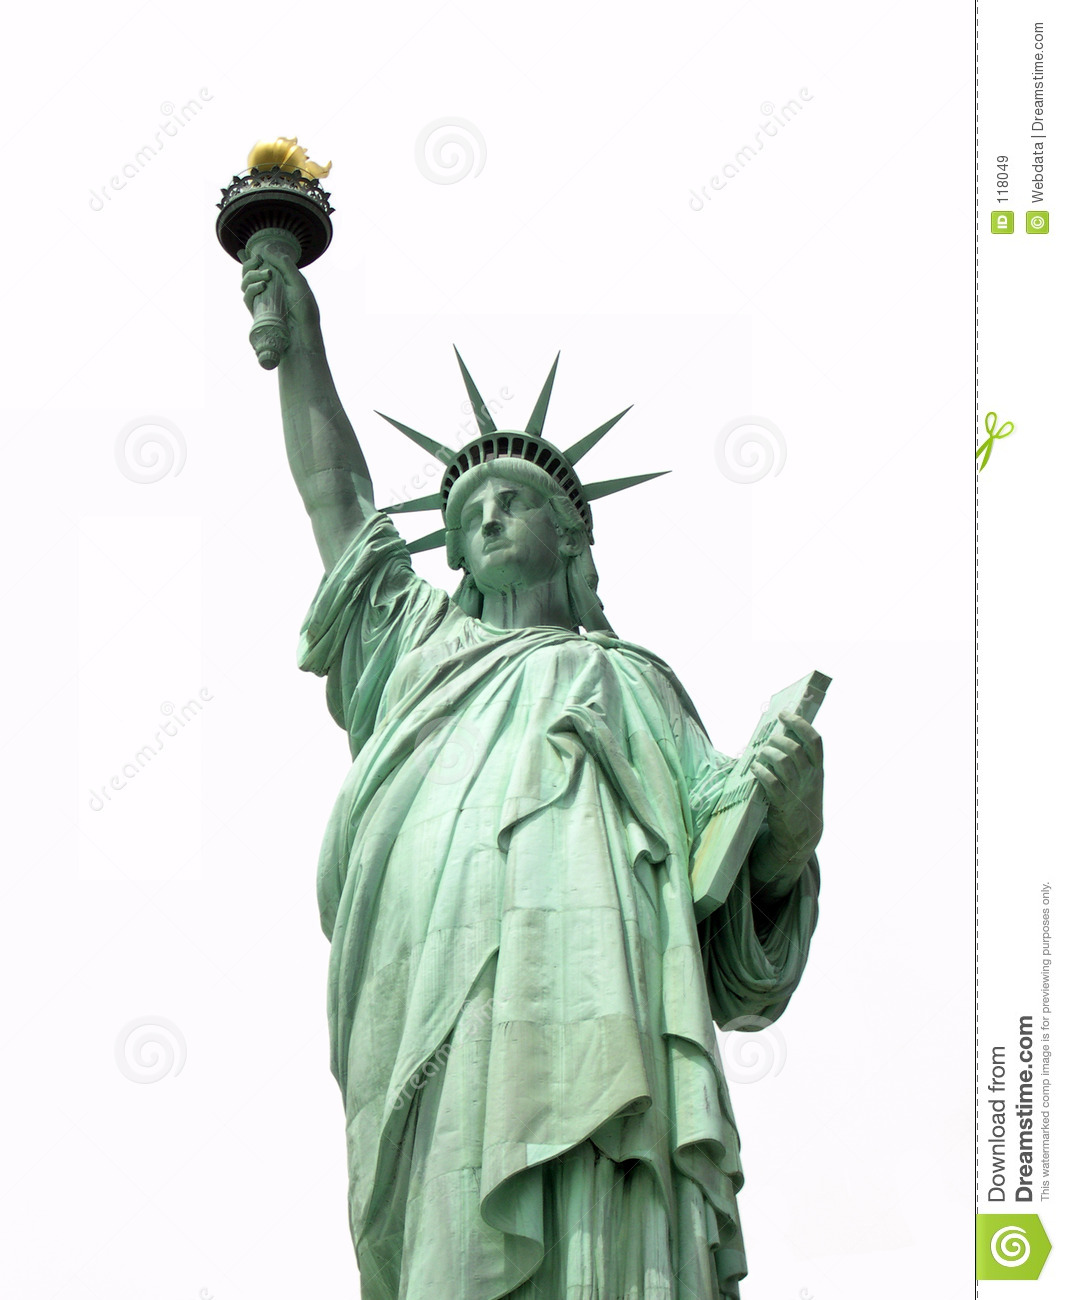 Statue Of Liberty Royalty Free Stock Images - Image: 118049